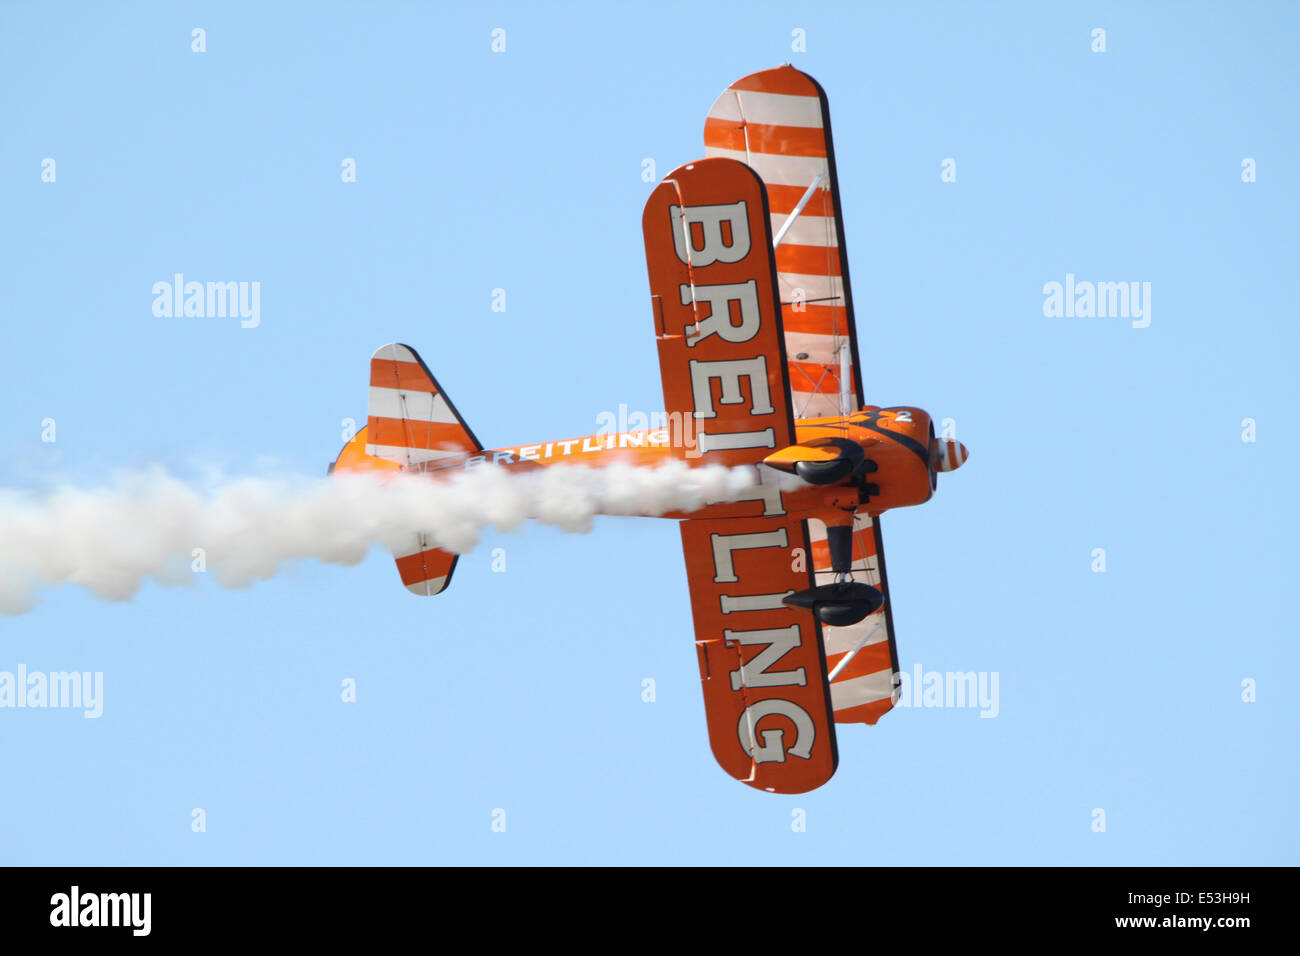 Breightling team plane - part of a display at Rhyl Air show in Wales, UK. - Stock Image